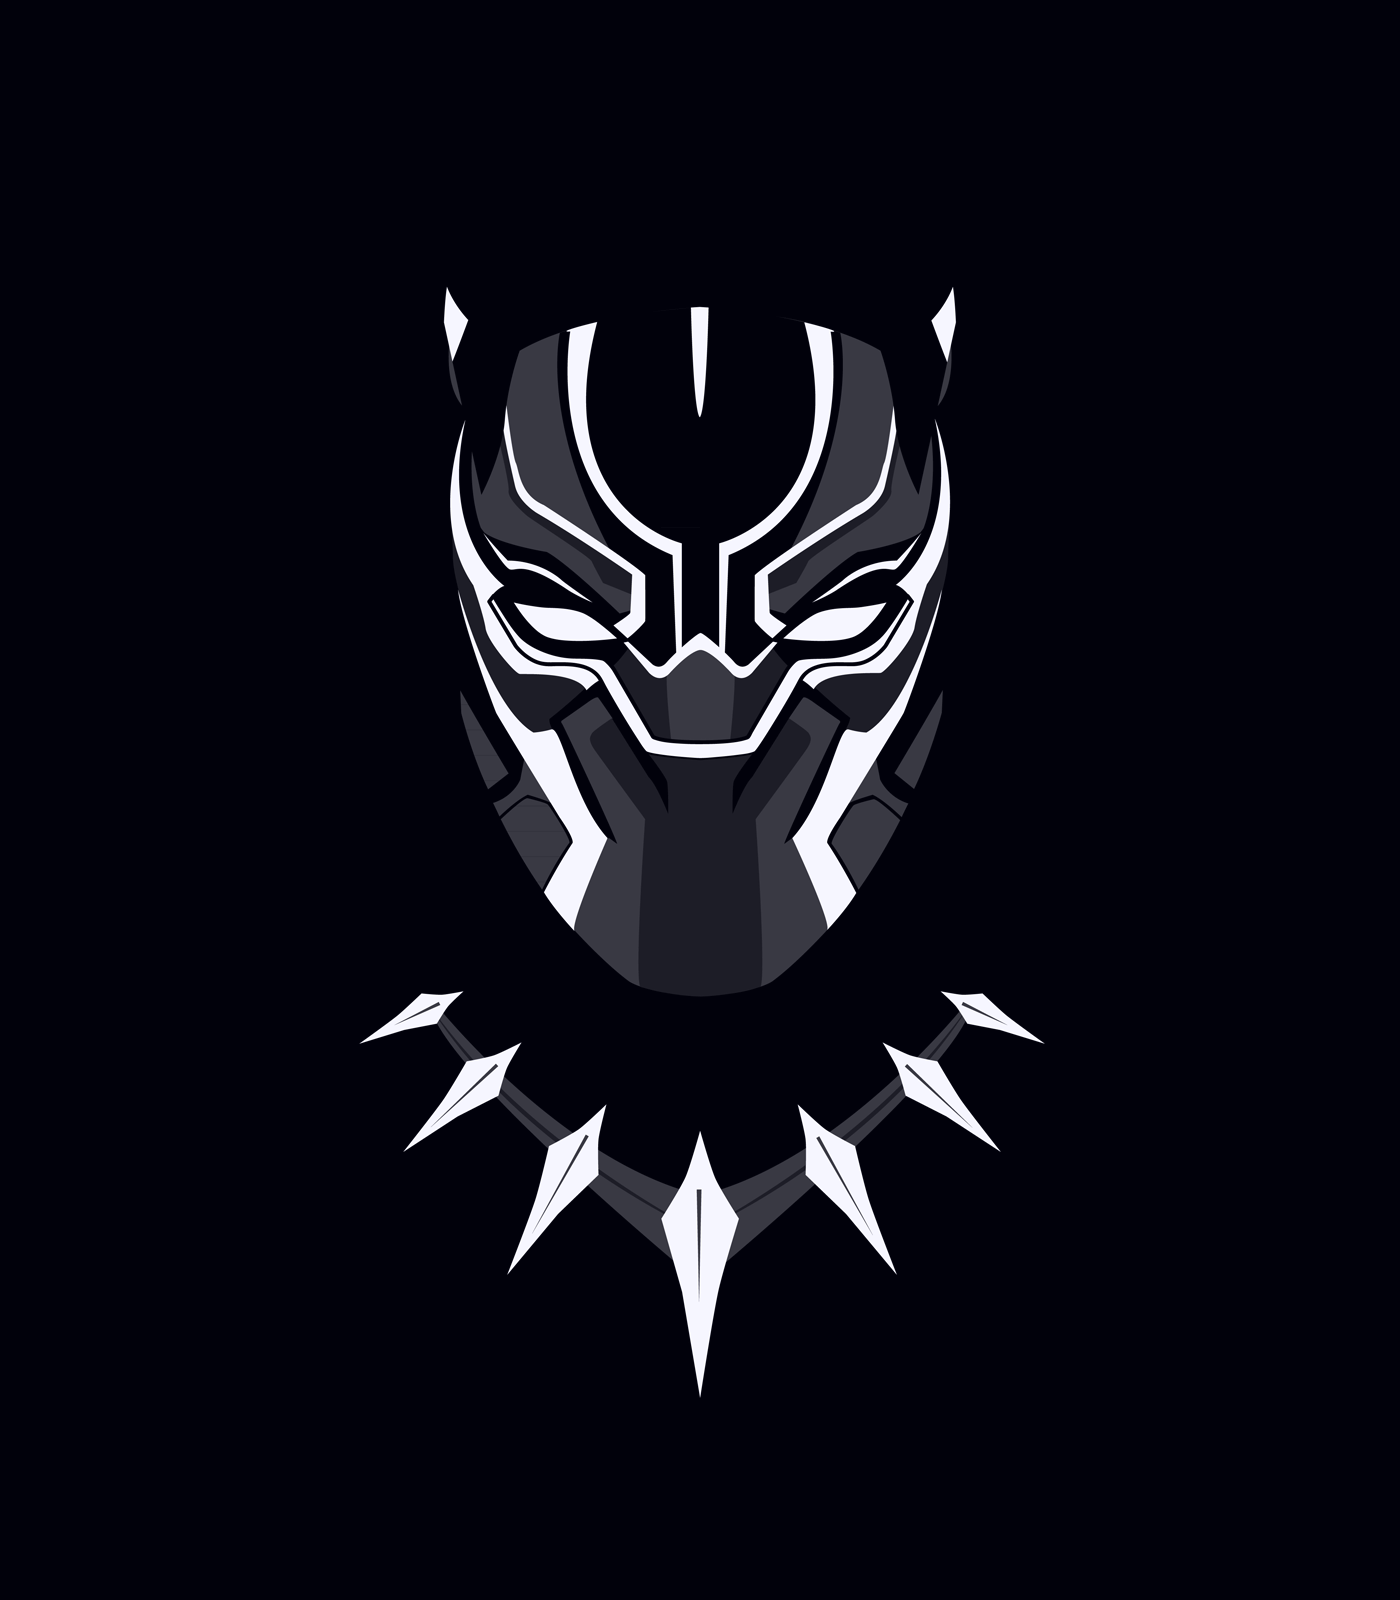 15 Black Panther Marvel Wallpapers 4k Iphone Android And Desktop The Ramenswag